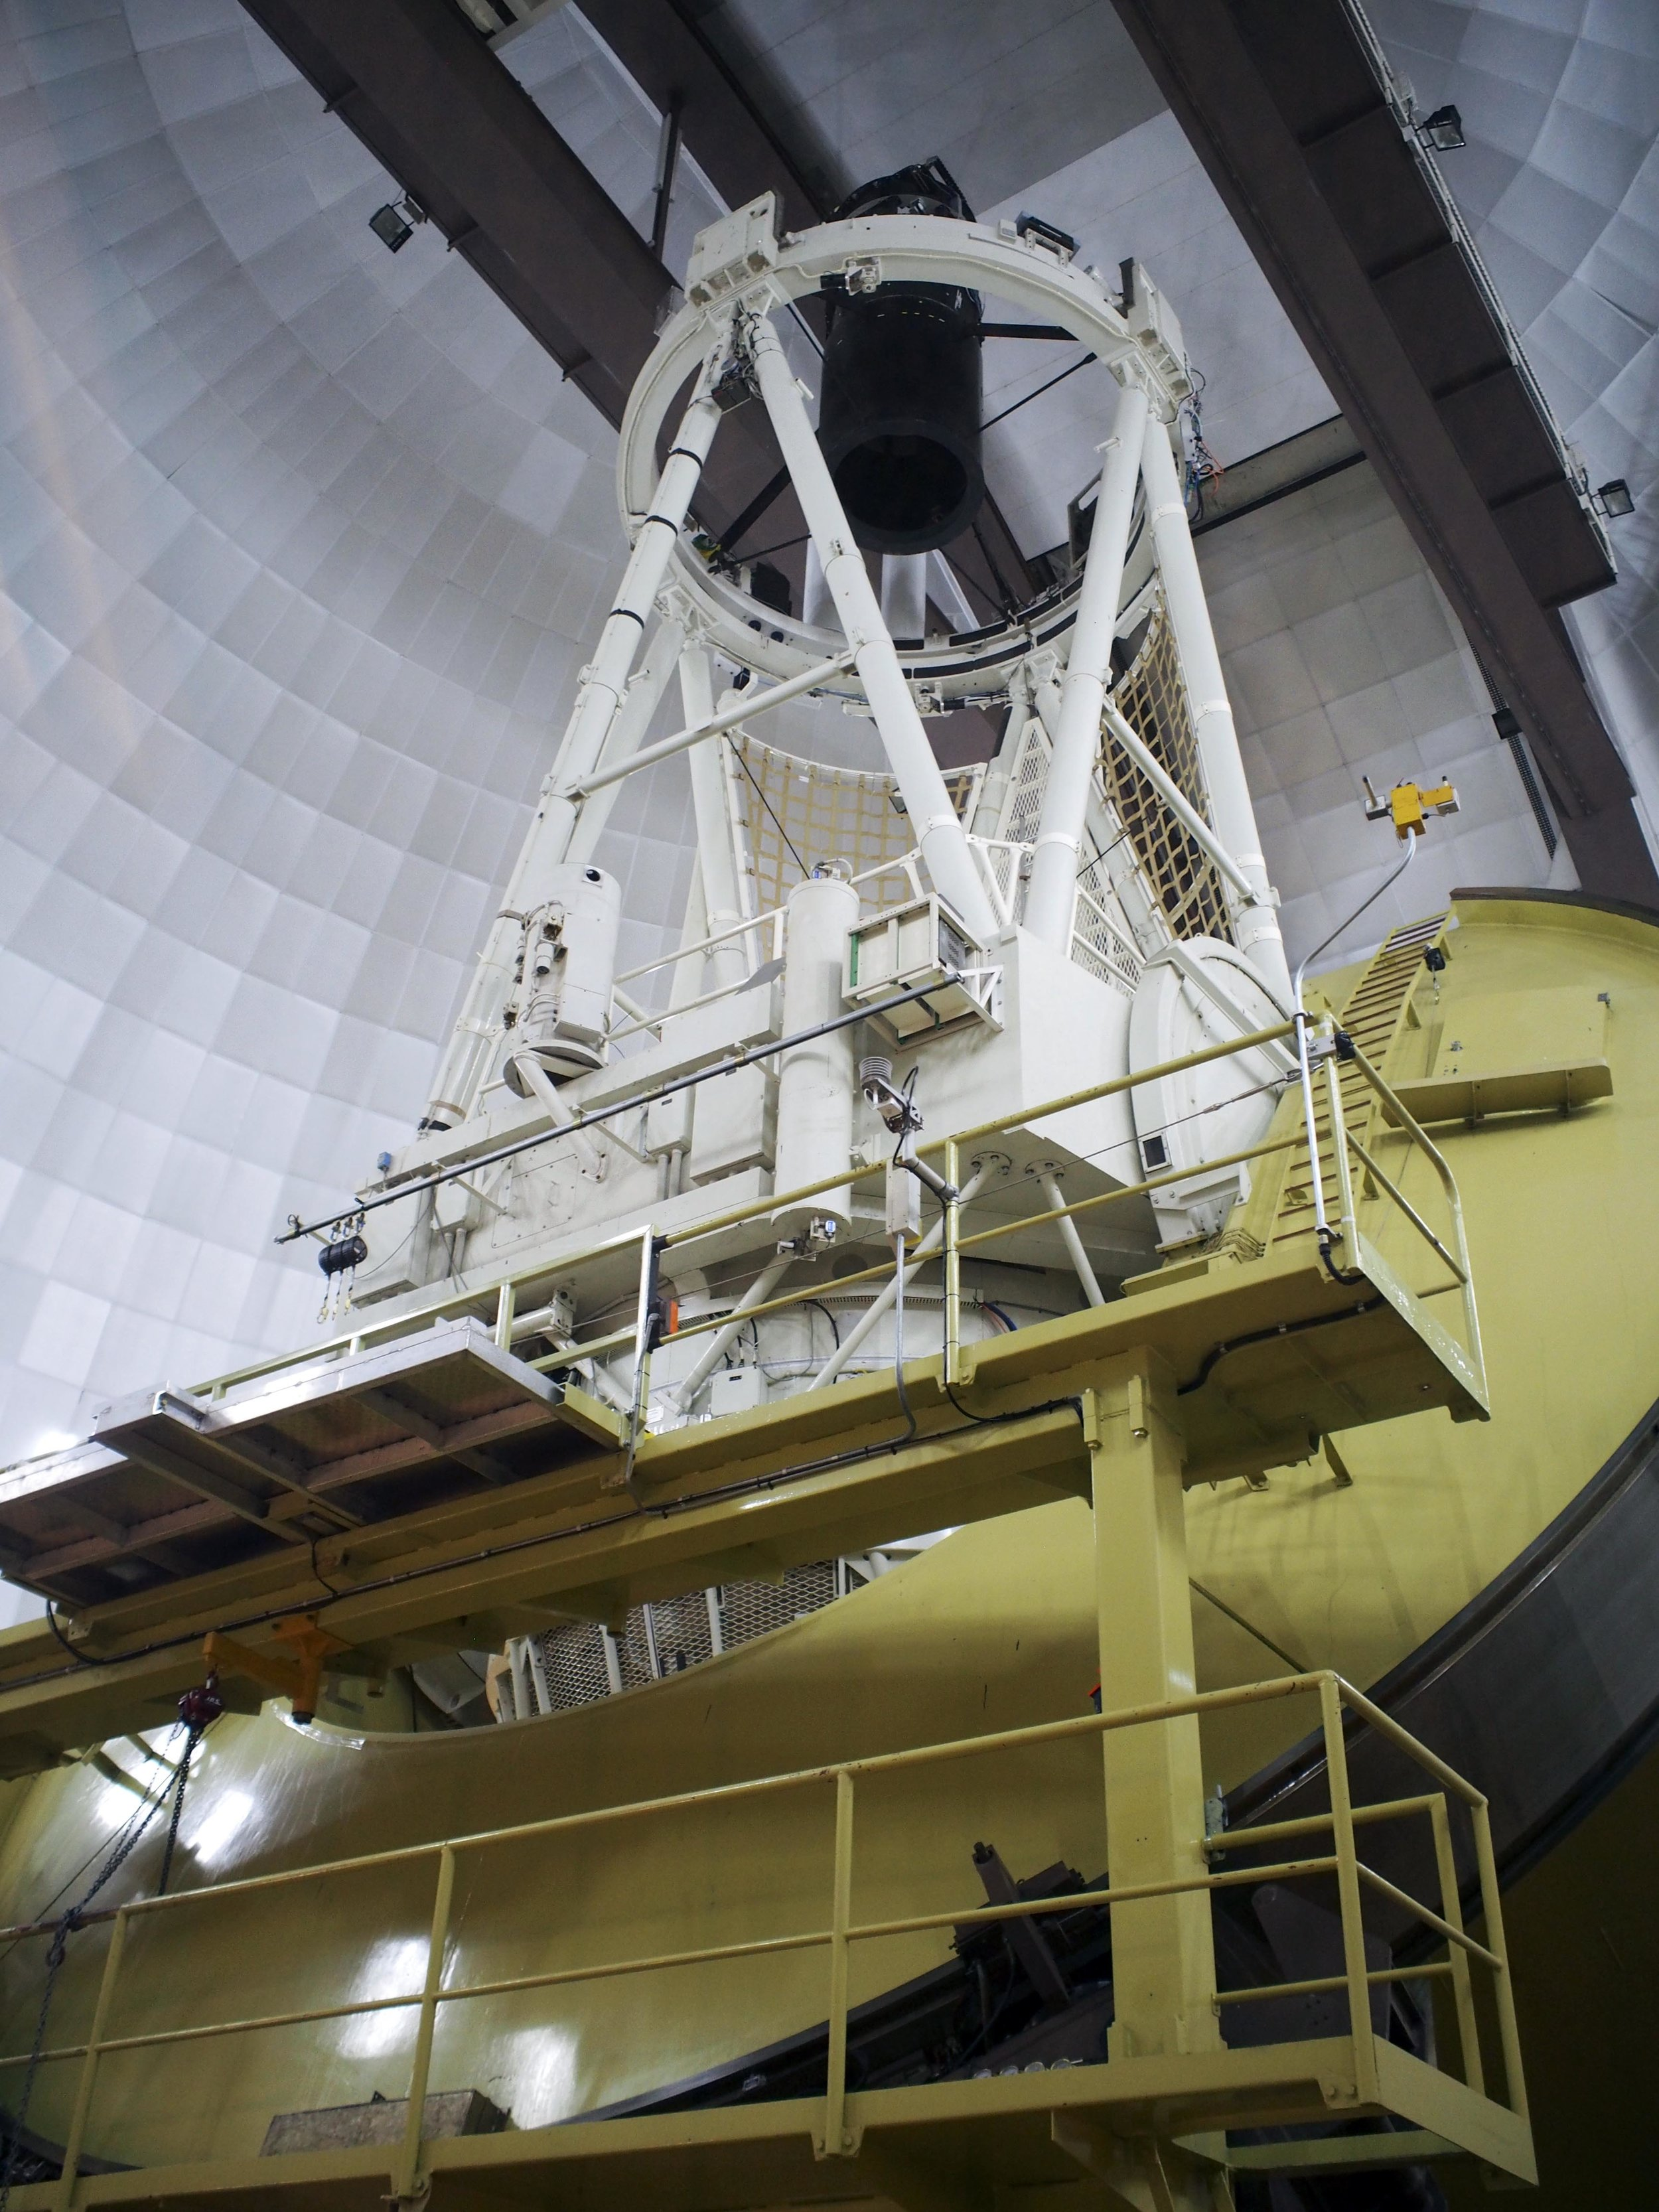 The largest Telescope in Australia at the Siding Springs Observatory … Massive